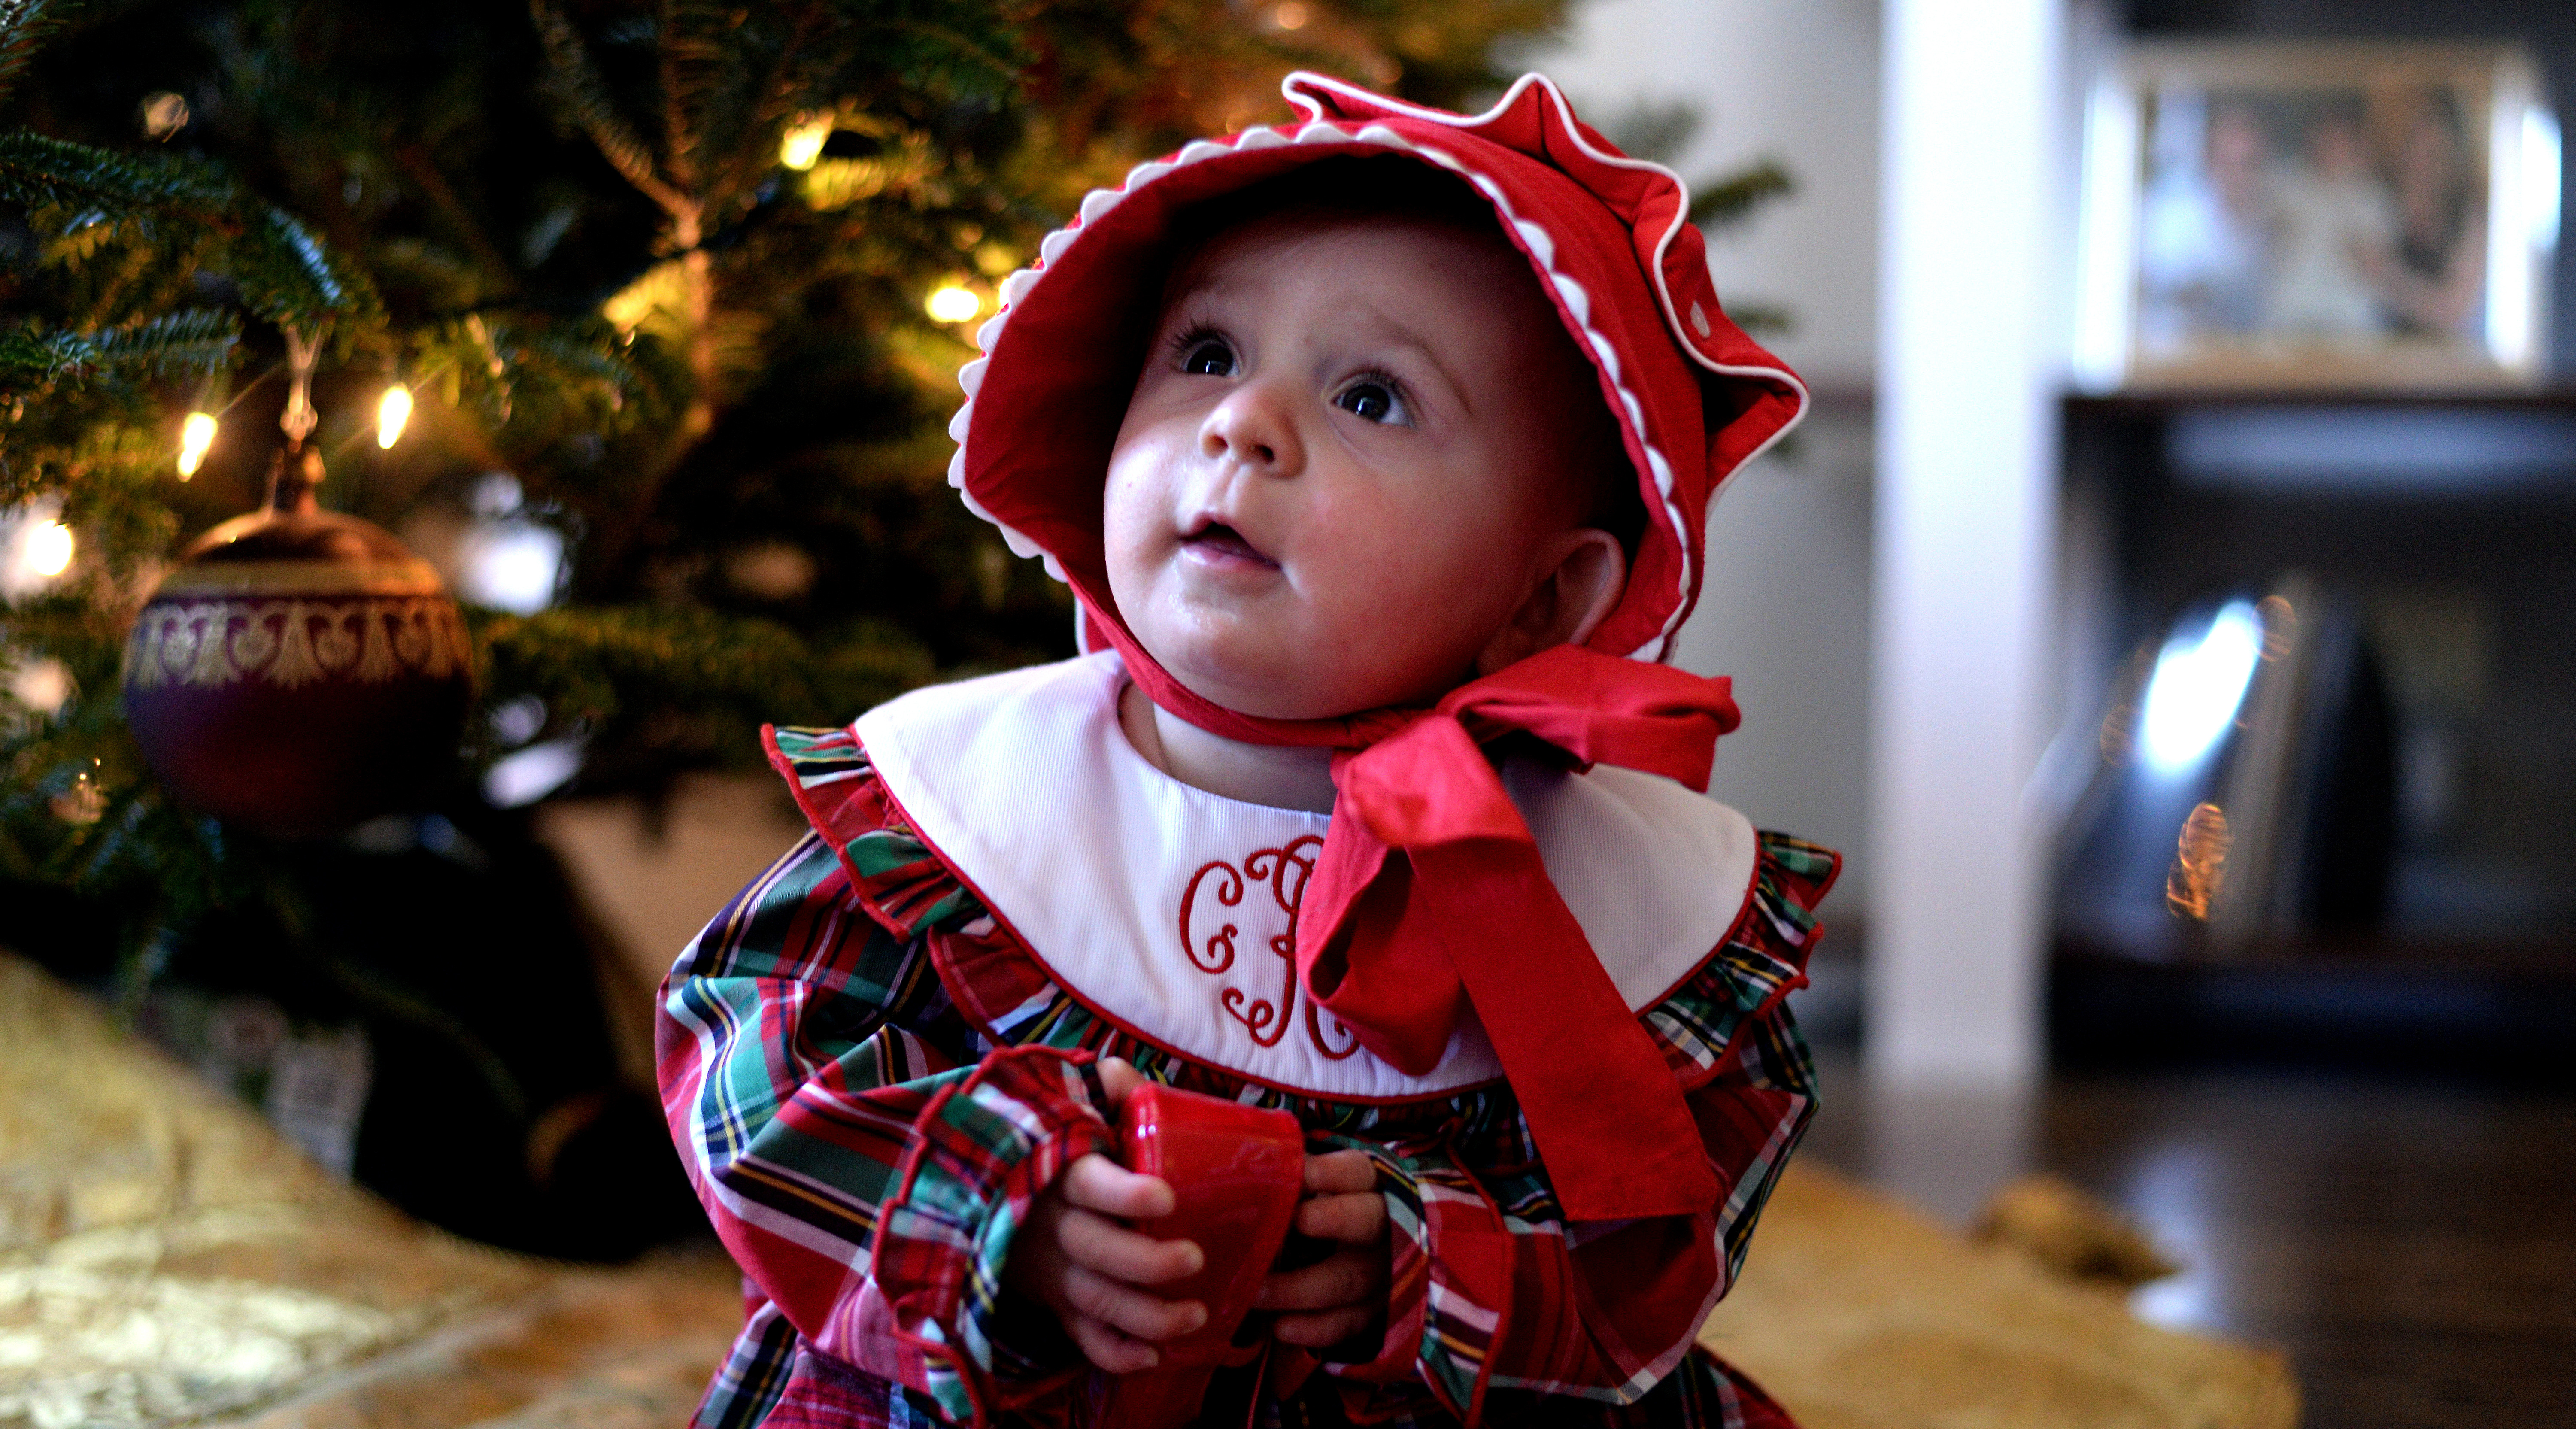 eb634c403 Cutest Holiday Attire for the Little One in Your Life - Well and ...